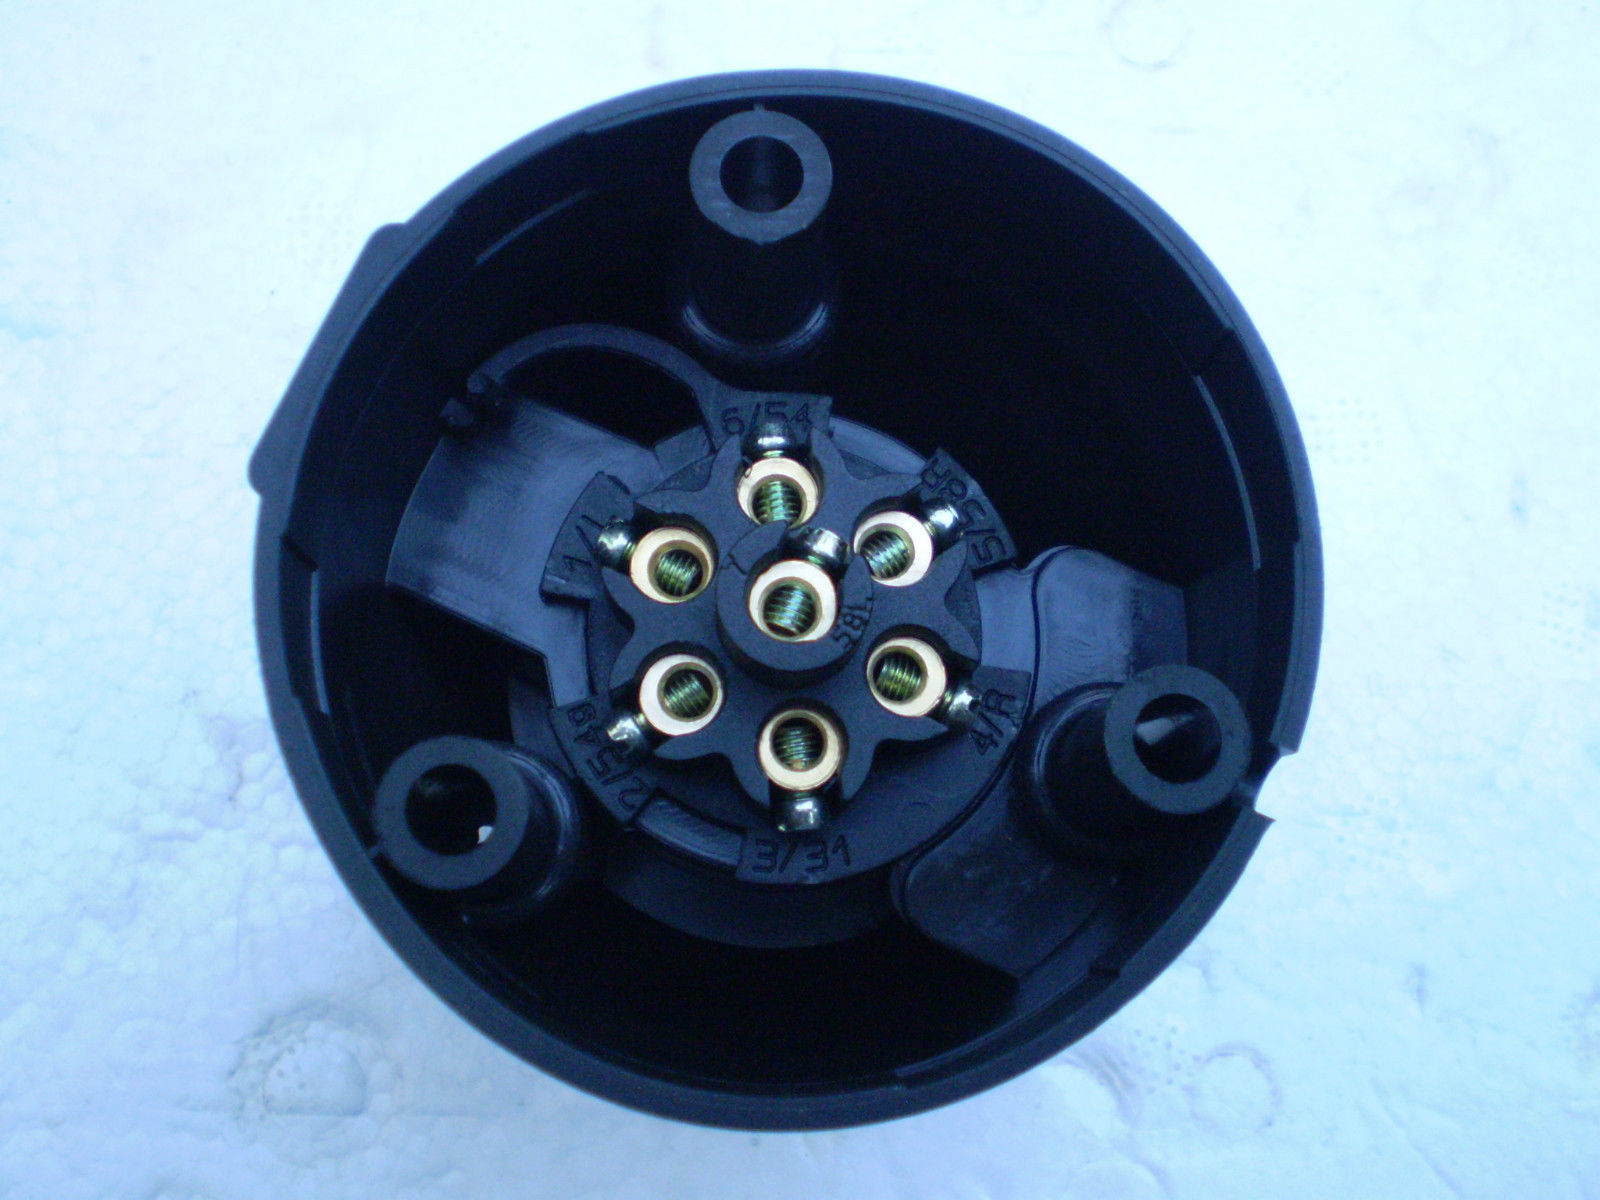 7 Pin Round Trailer Socket Large On Car Side Connector